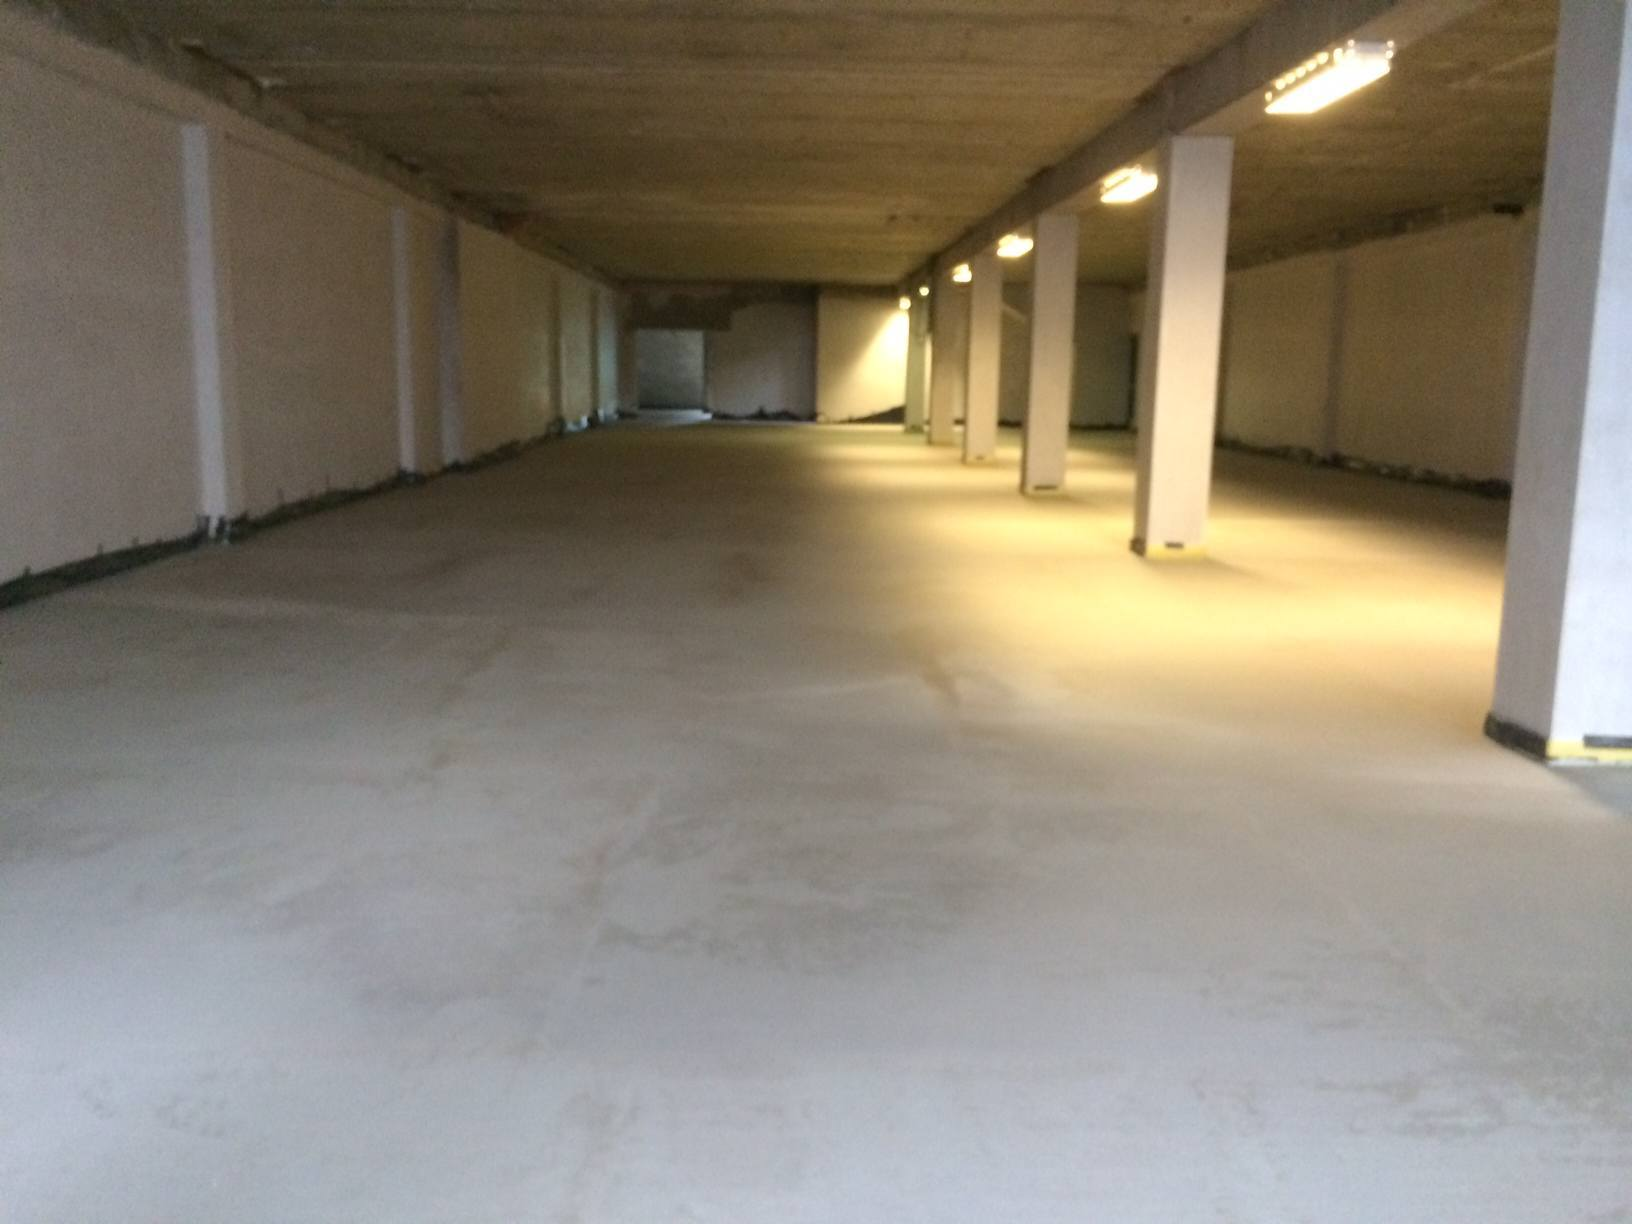 New screed floor for New Dealz Store Dundalk Co Louth  SMET